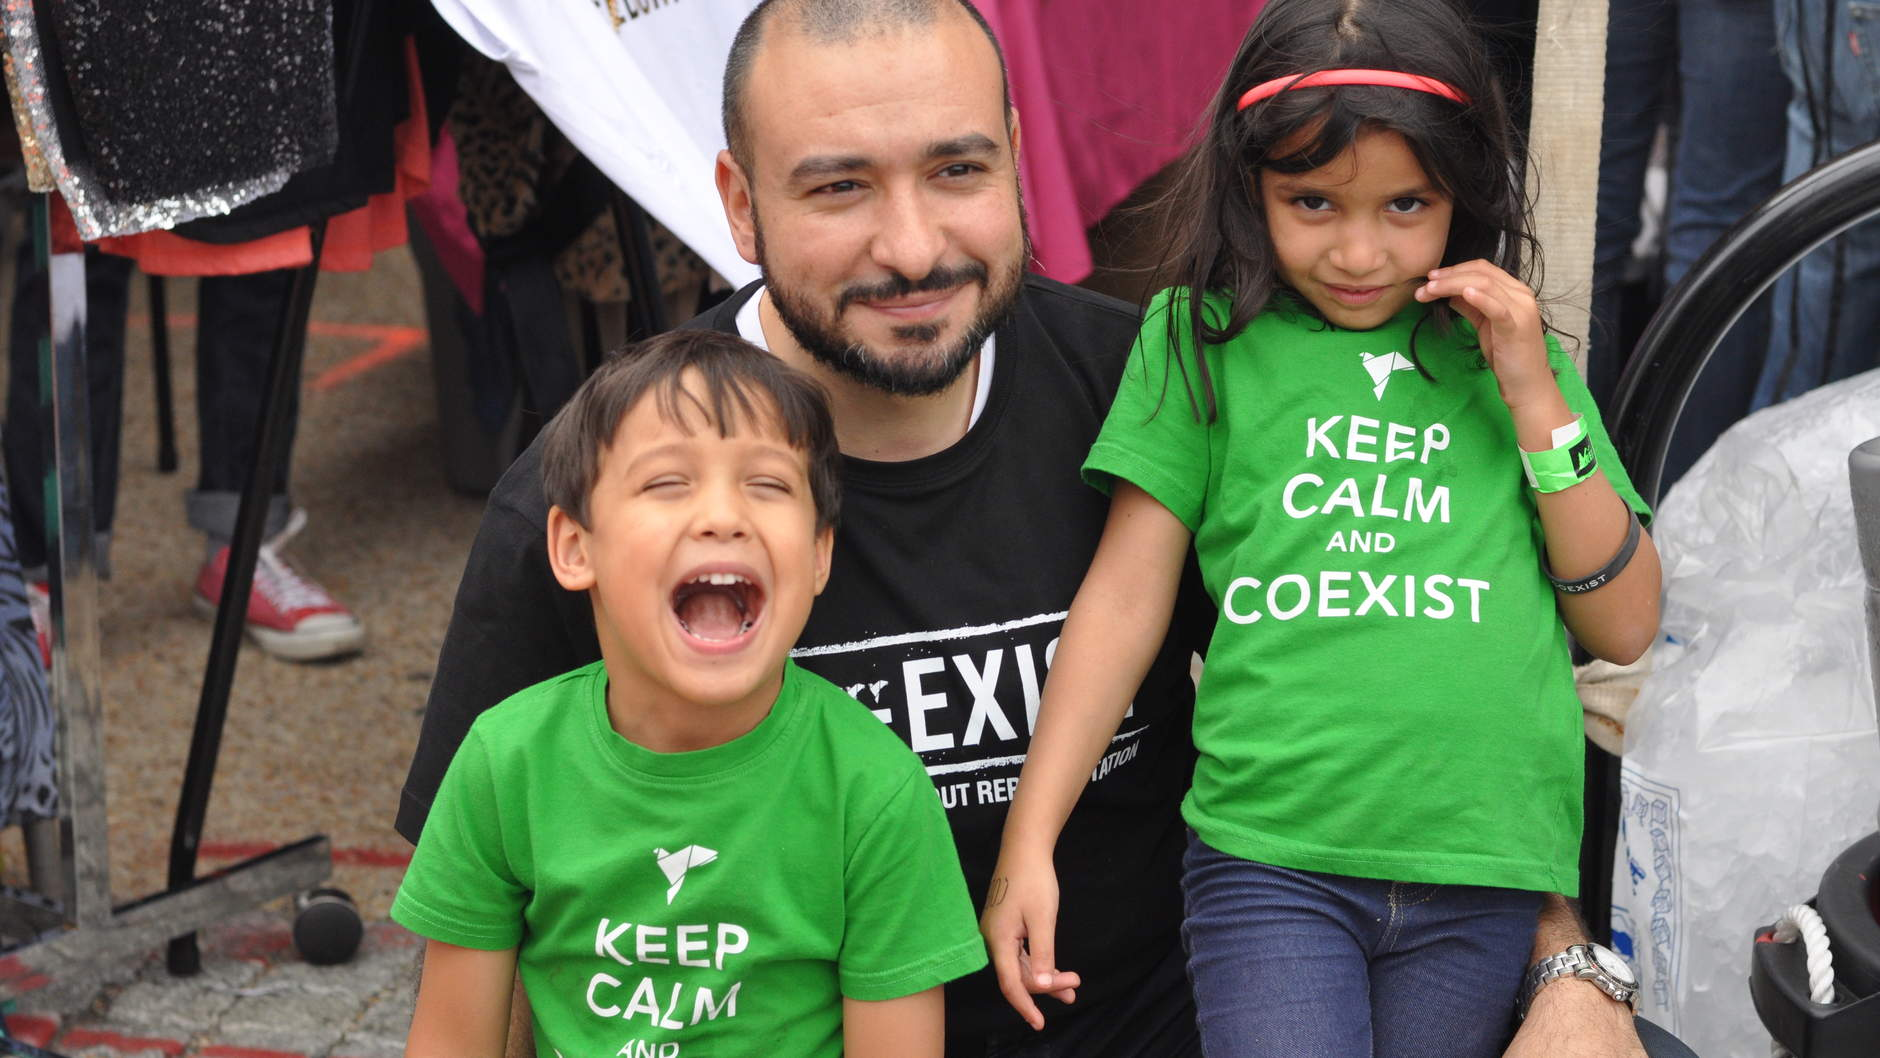 Coexist promotes girls' right to education